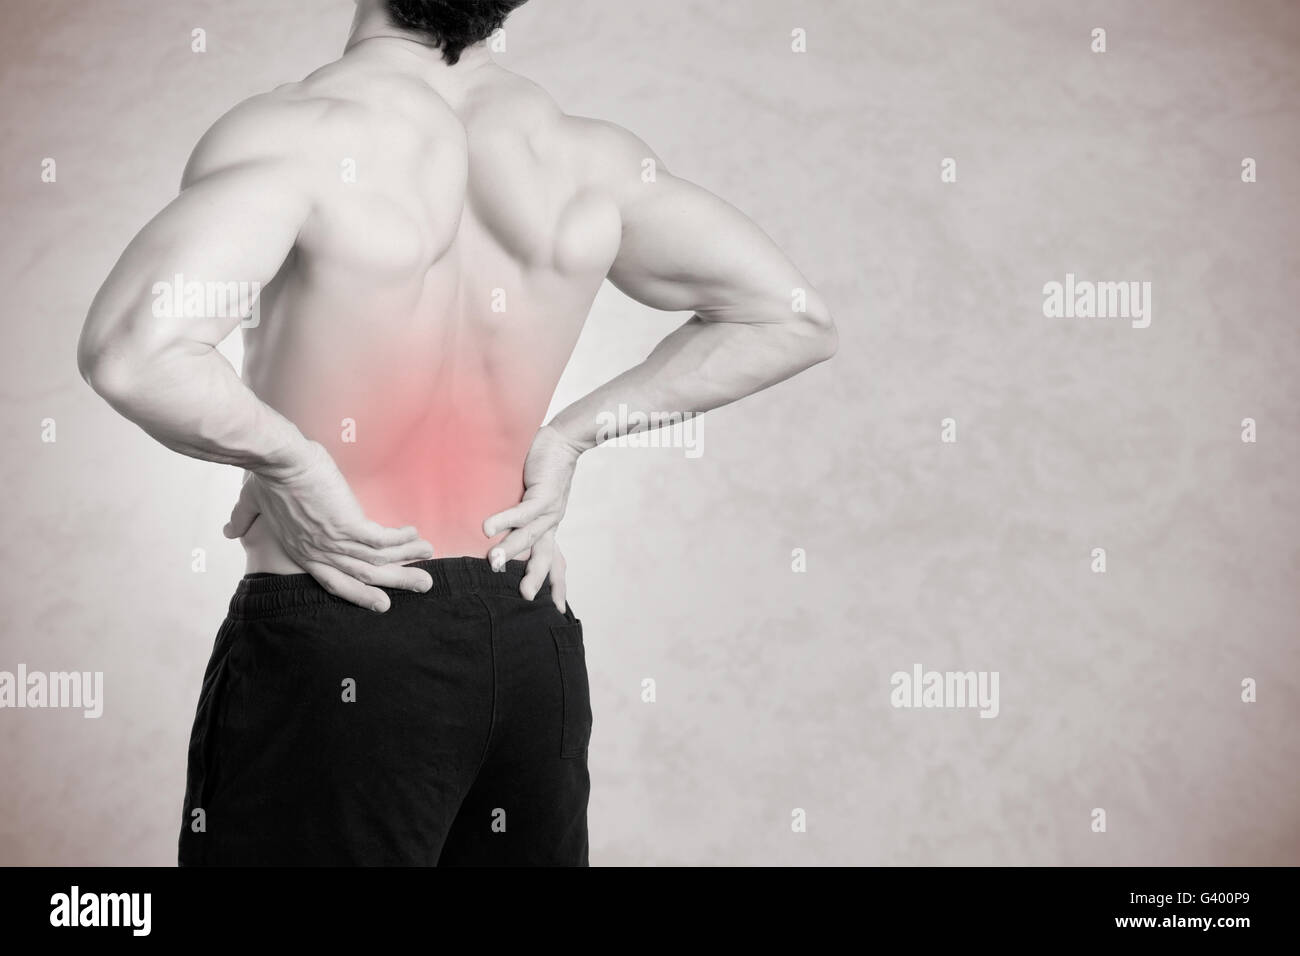 Male athlete with pain in his lower back, isolated in grey - Stock Image